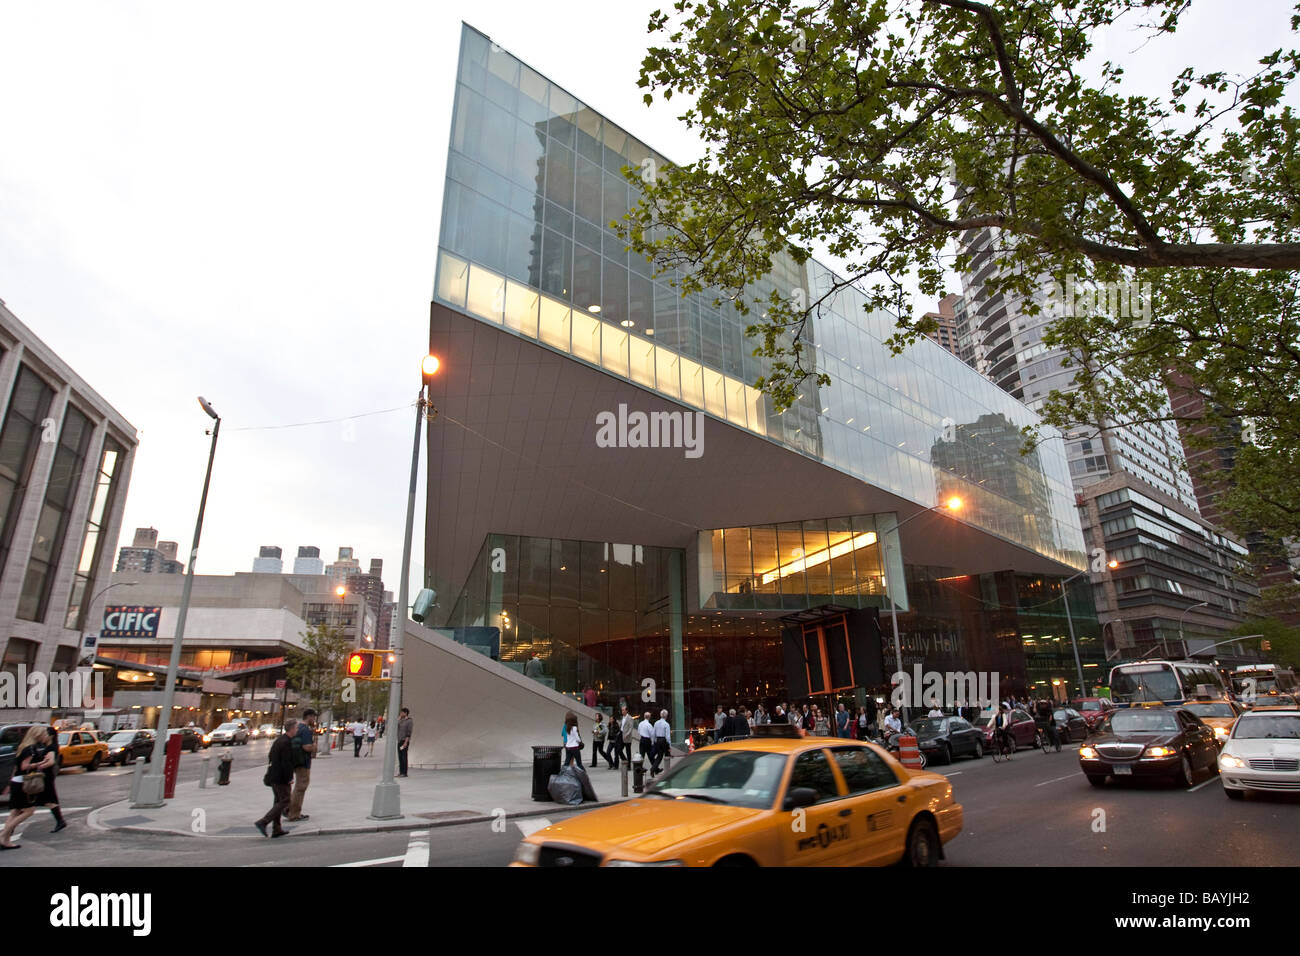 The renovated Alice Tully Hall at the Lincoln Center New York 8 May 2009 - Stock Image